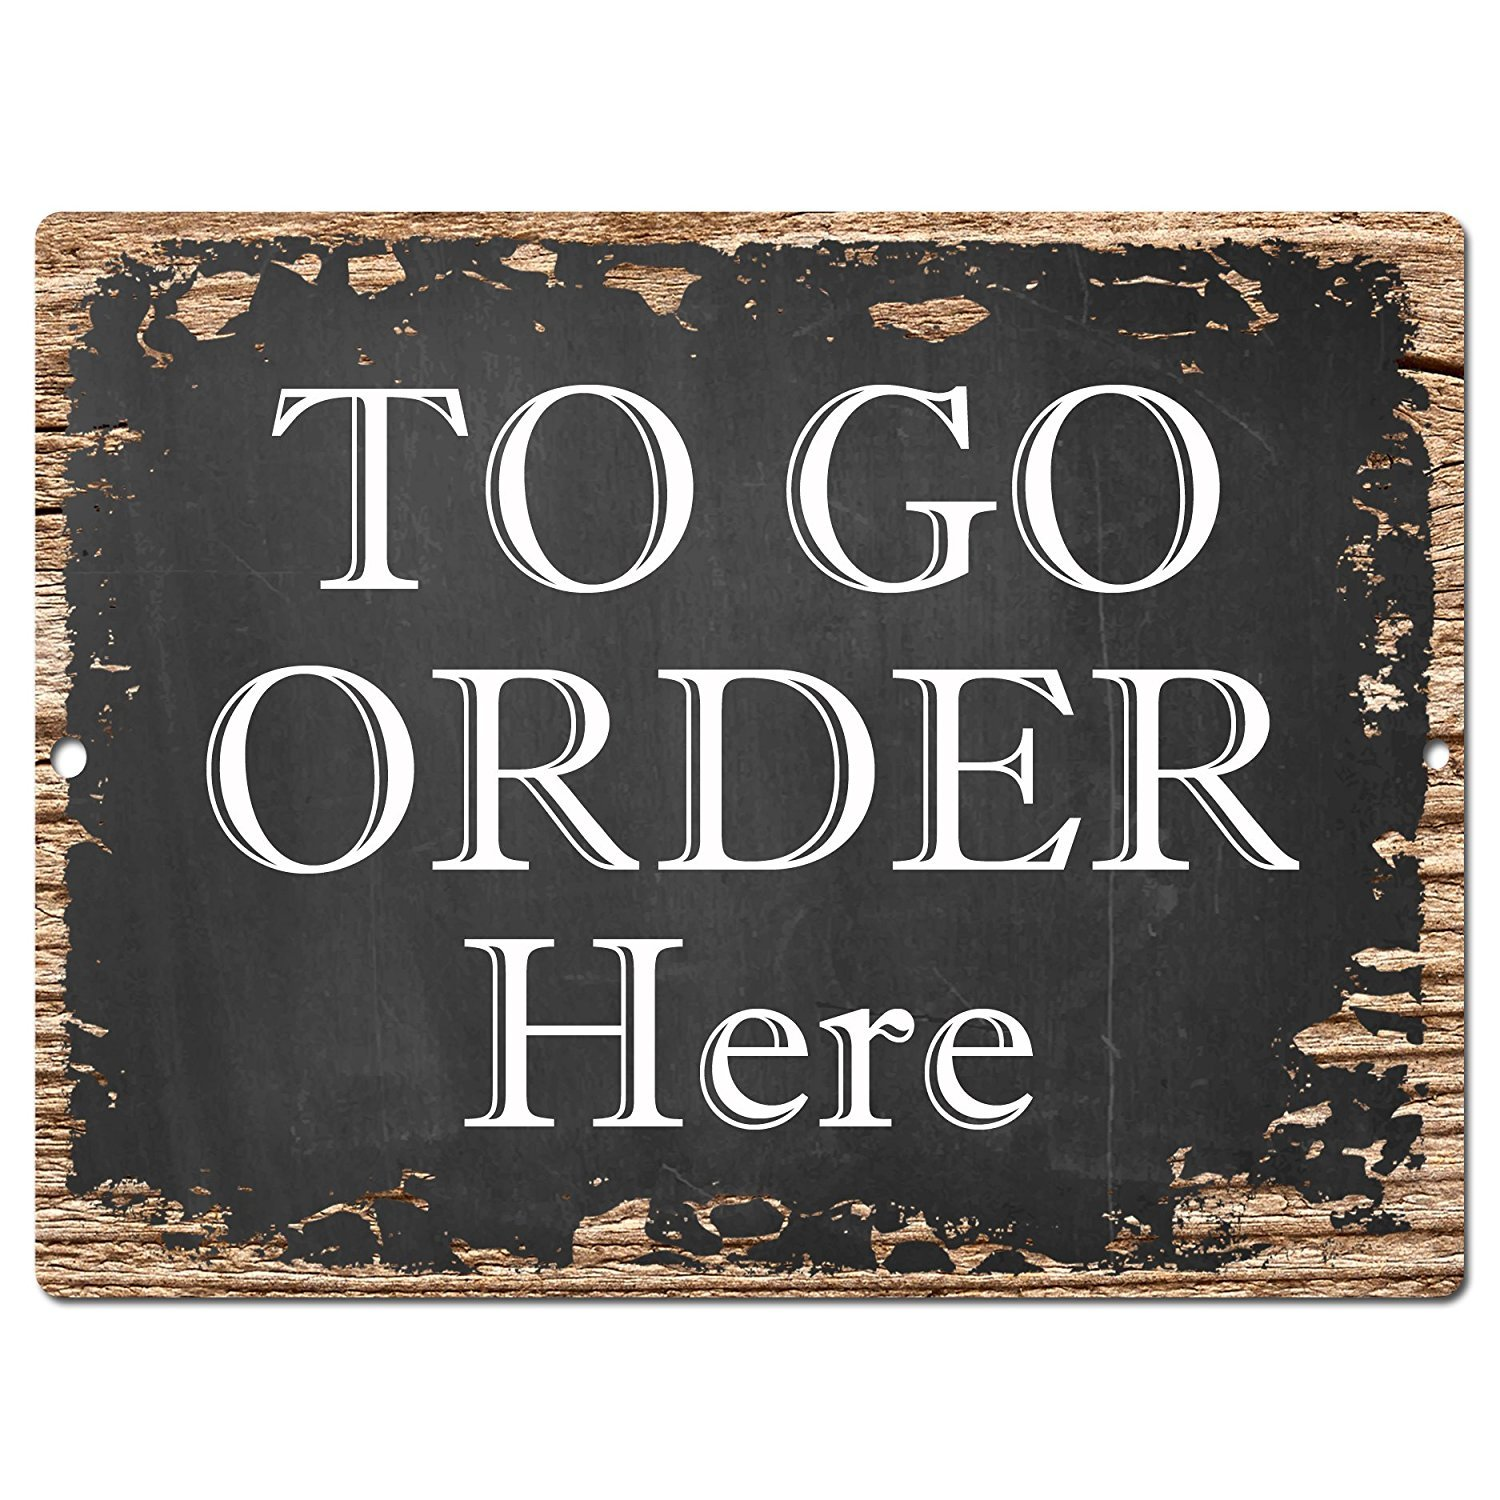 TO GO ORDER HERE Chic Sign Vintage Retro Rustic 9x 12 Metal Plate Store Home Room Wall Decor Gift